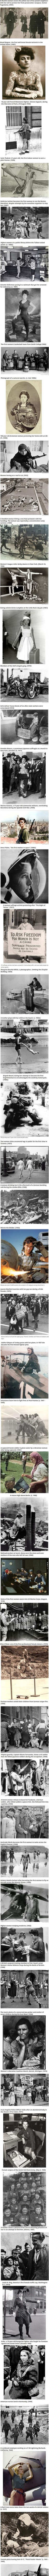 52 Powerful Photos Of Women Who Changed History Forever — imagine putting these on your daughters walls for her to have historical strong women to look up to Weird Facts, Fun Facts, Star Francaise, All Meme, History Facts, Nasa History, History Quotes, The More You Know, Interesting History